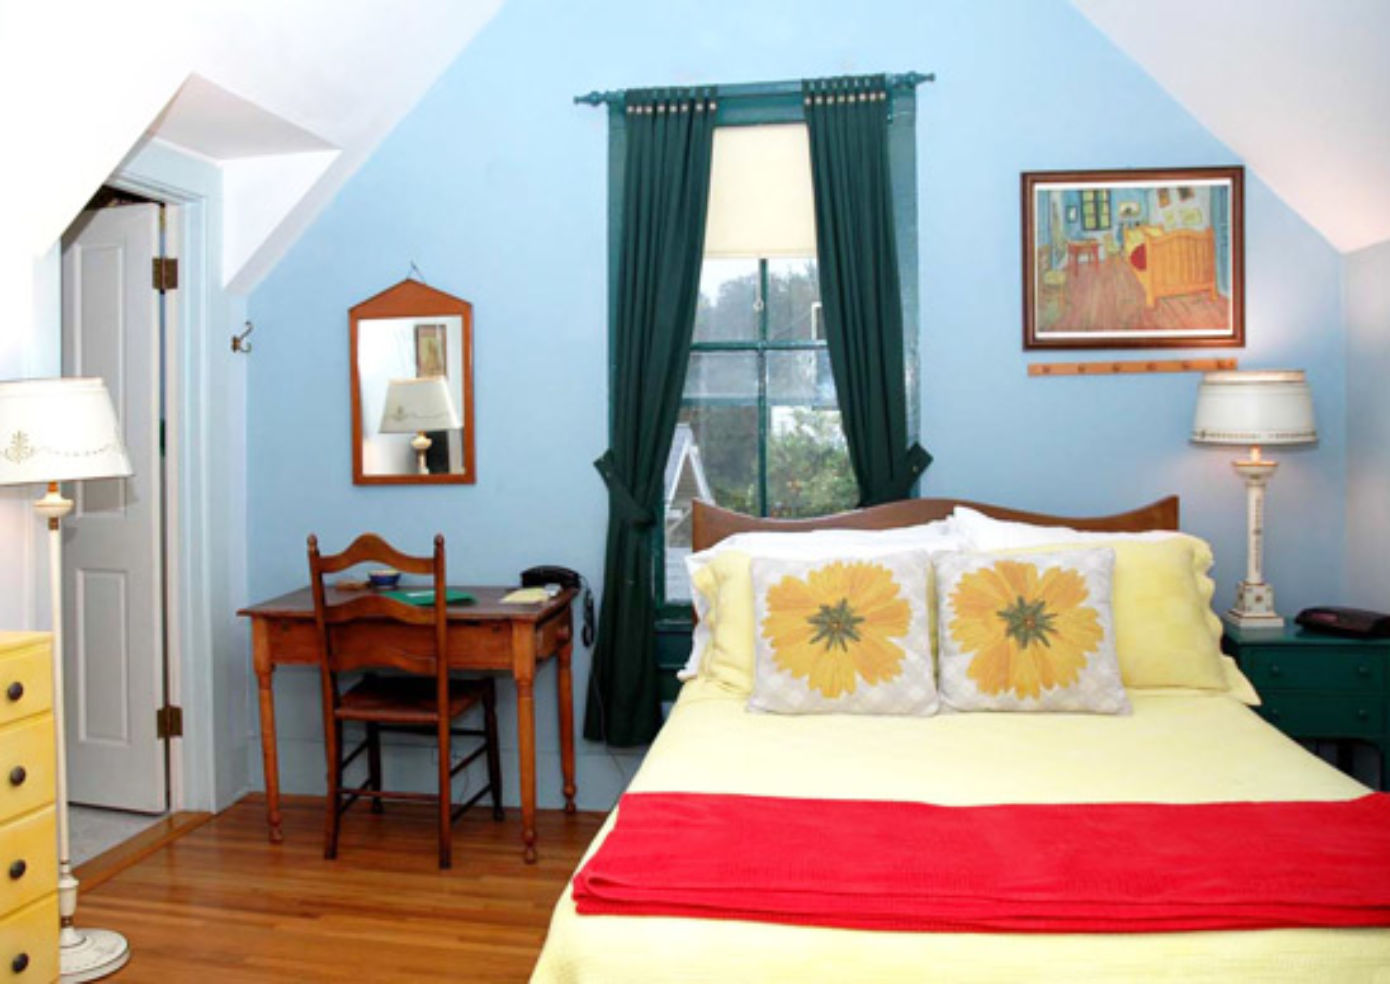 The Van Gogh room at the Artists' Inn